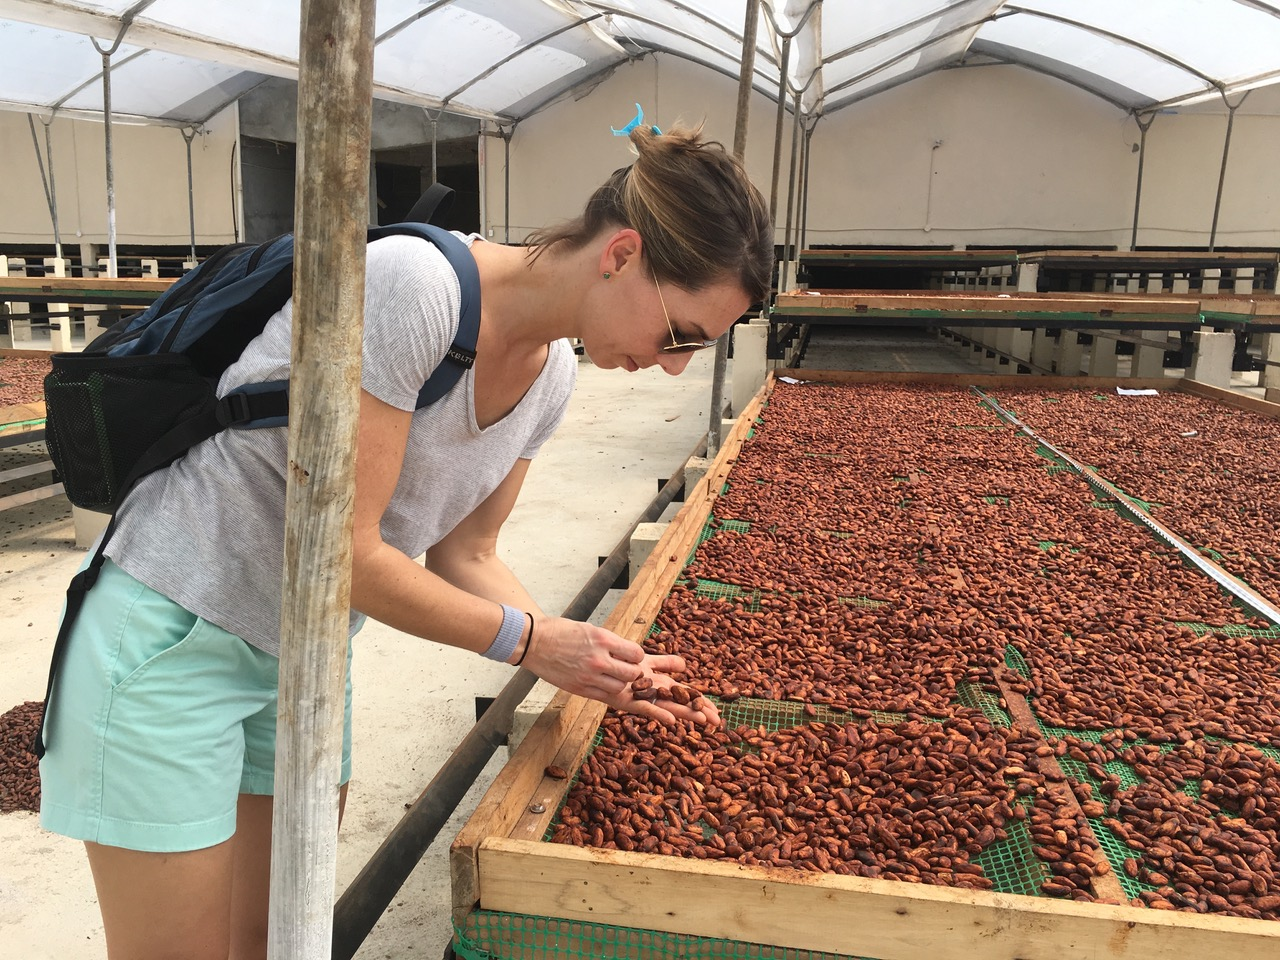 Monica Rogan, co-owner of Goodnow Farms, inspects cacao beans at the source